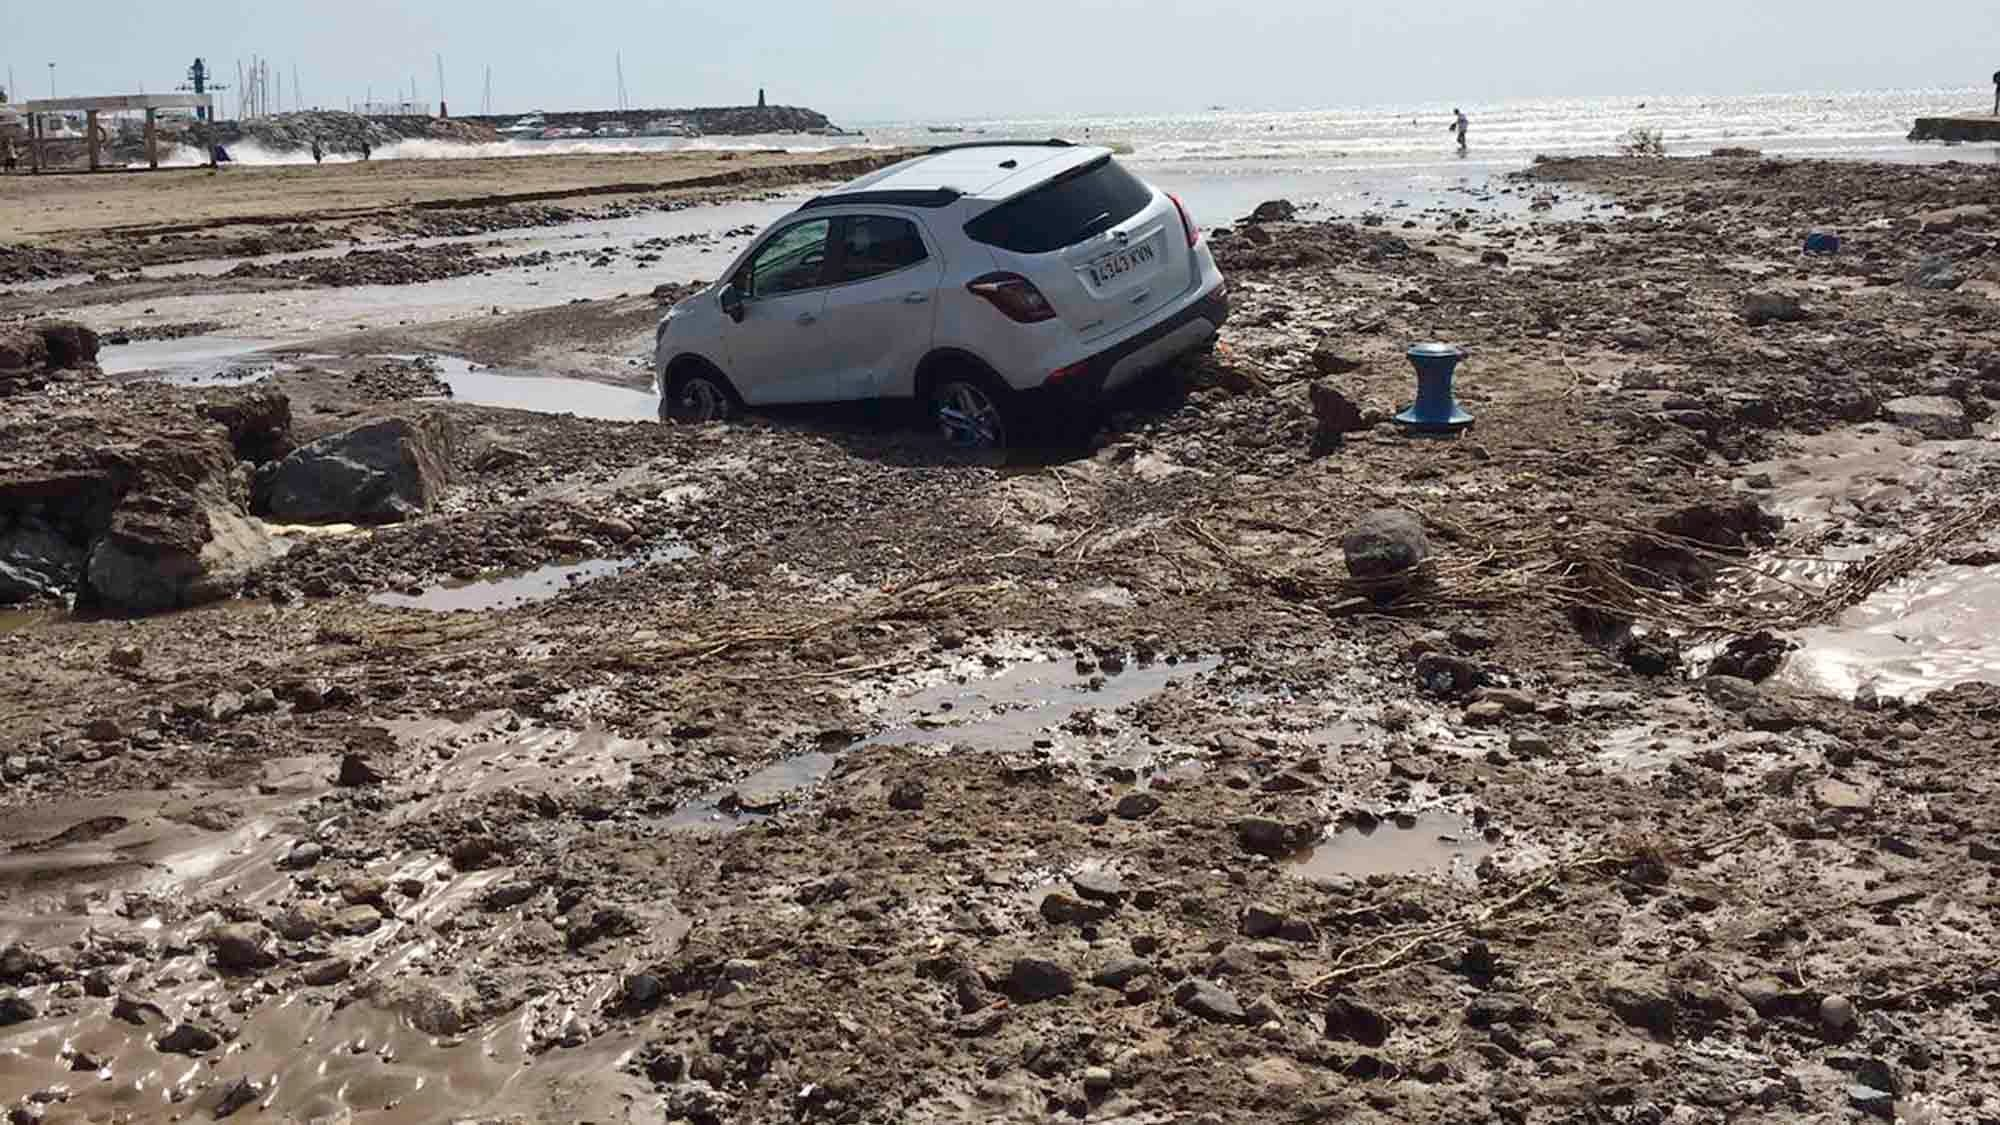 Death Toll Rises to 6 in Southeast Spain Floods; 3,500 People Rescued